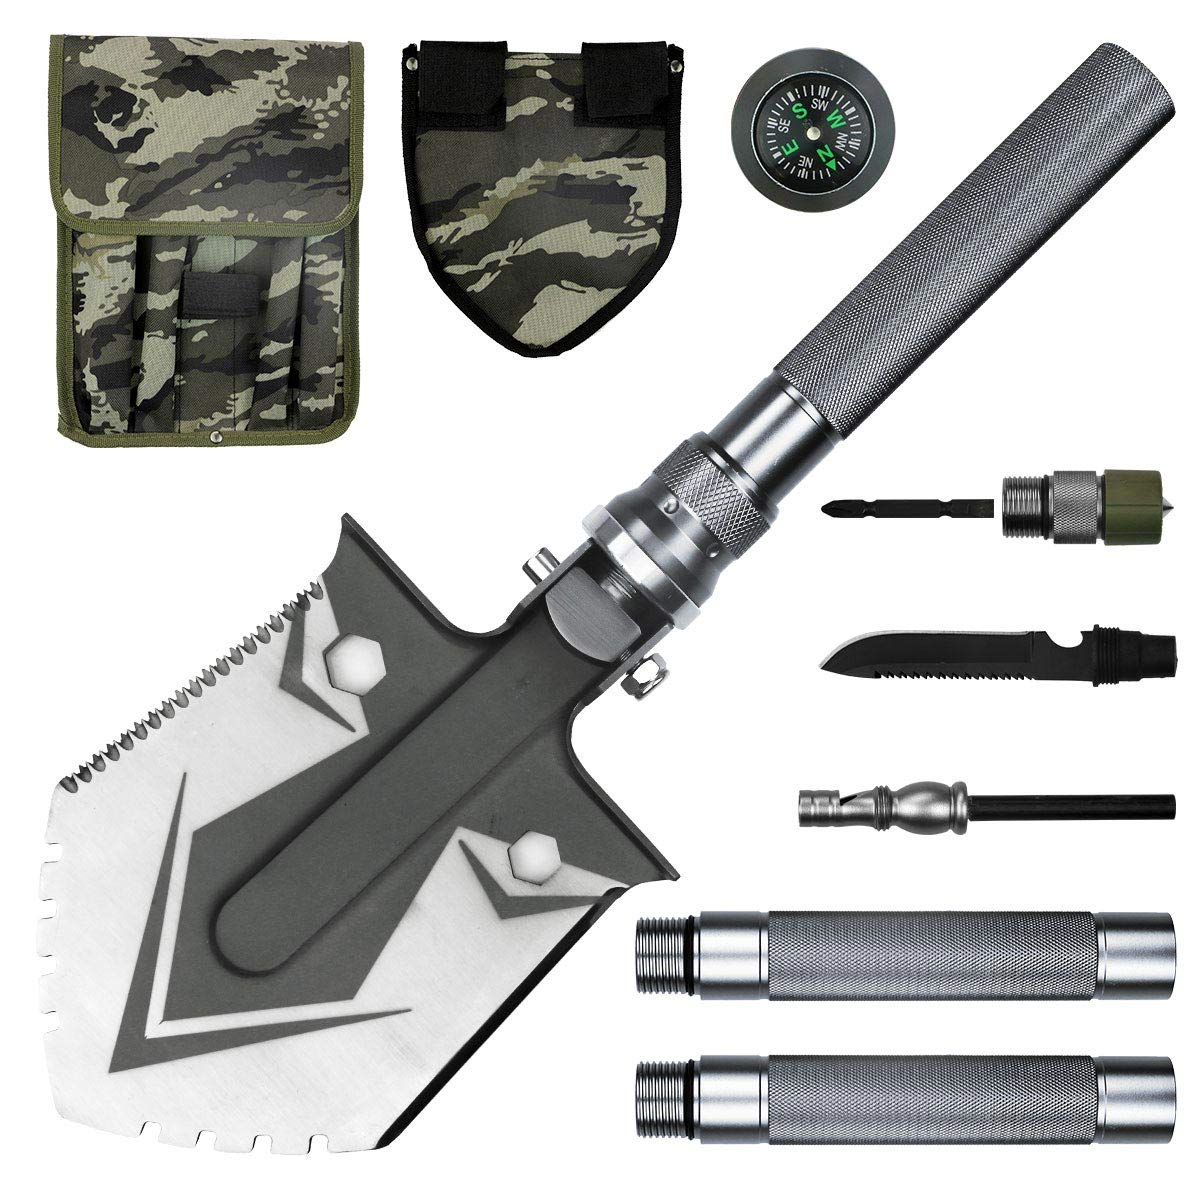 BACOENG Compact Folding Shovel [31 inch Length] with MOLLE Pouch - Tactical Multitool Spade Kit for Camping, Hiking, Backpacking, Fishing, Trench Entrenching Tool etc